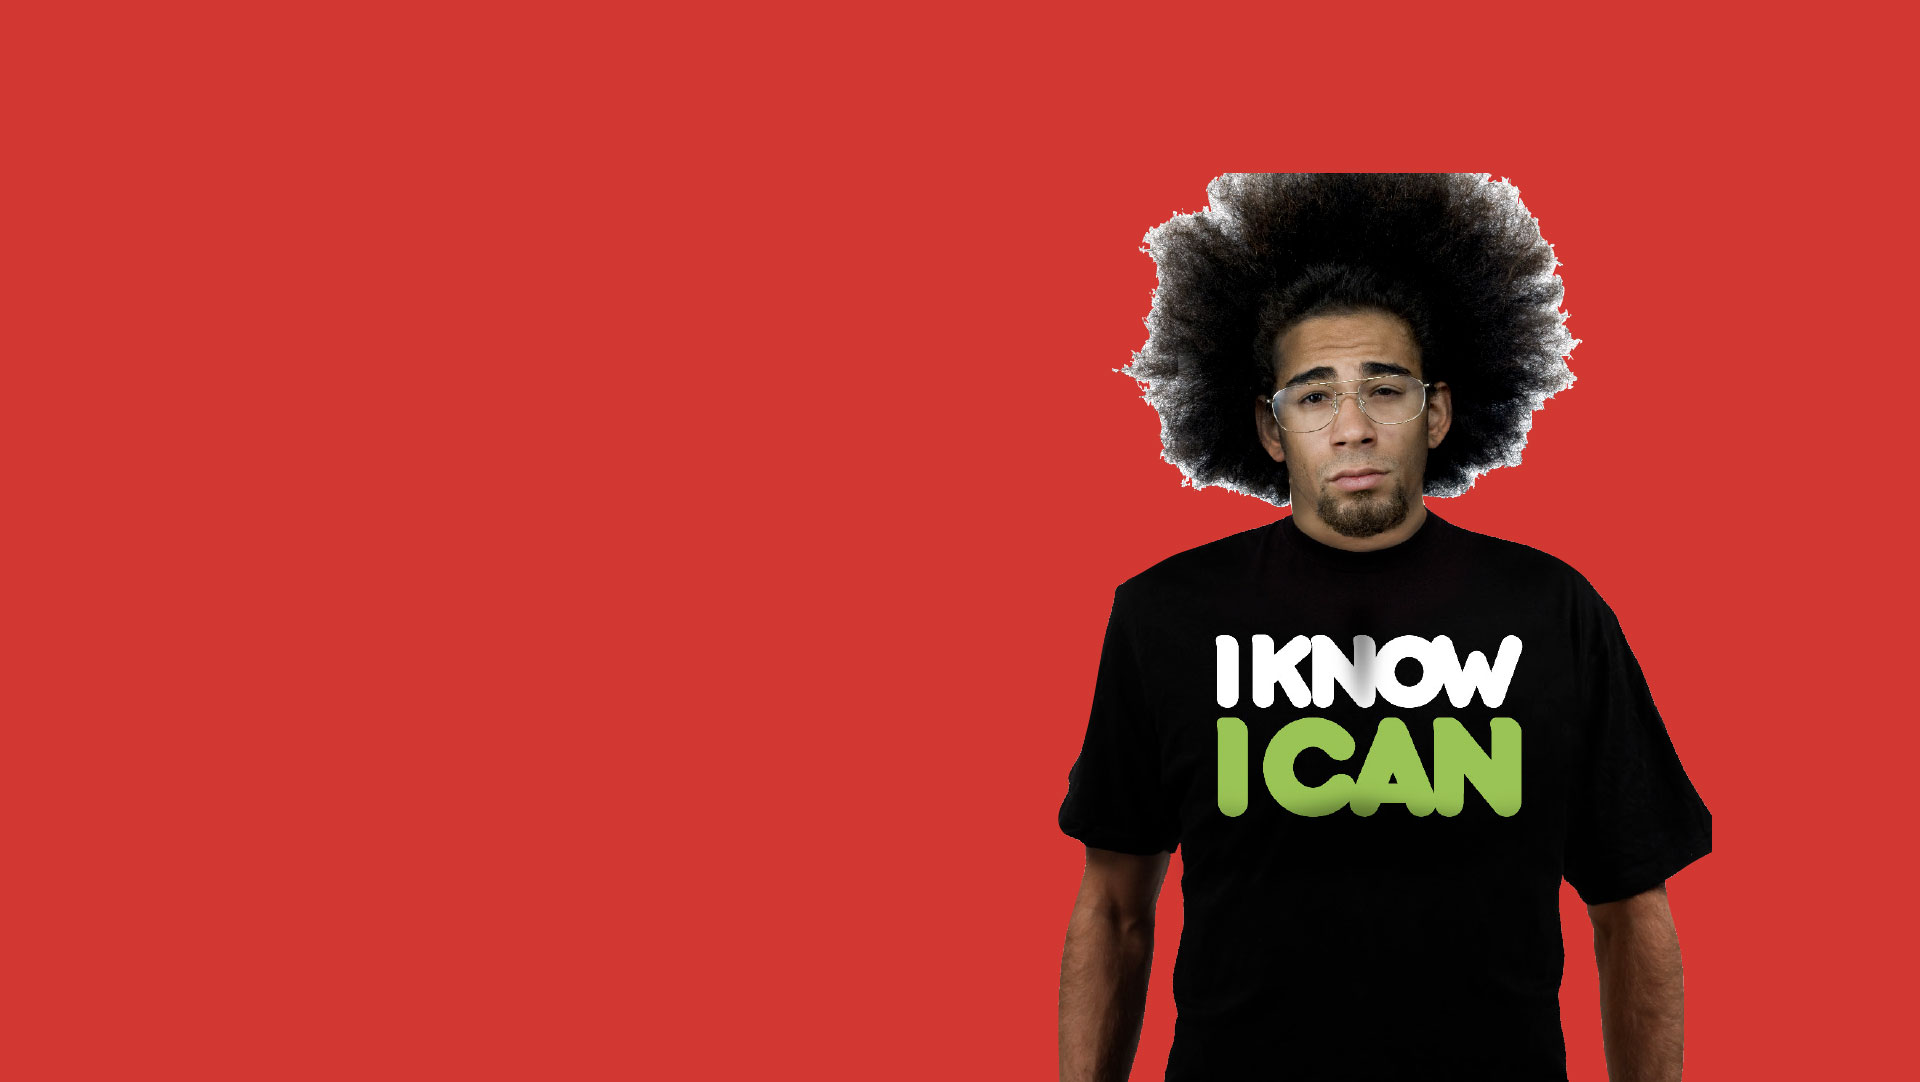 I know I can logo on model wearing a black t shirt with red background